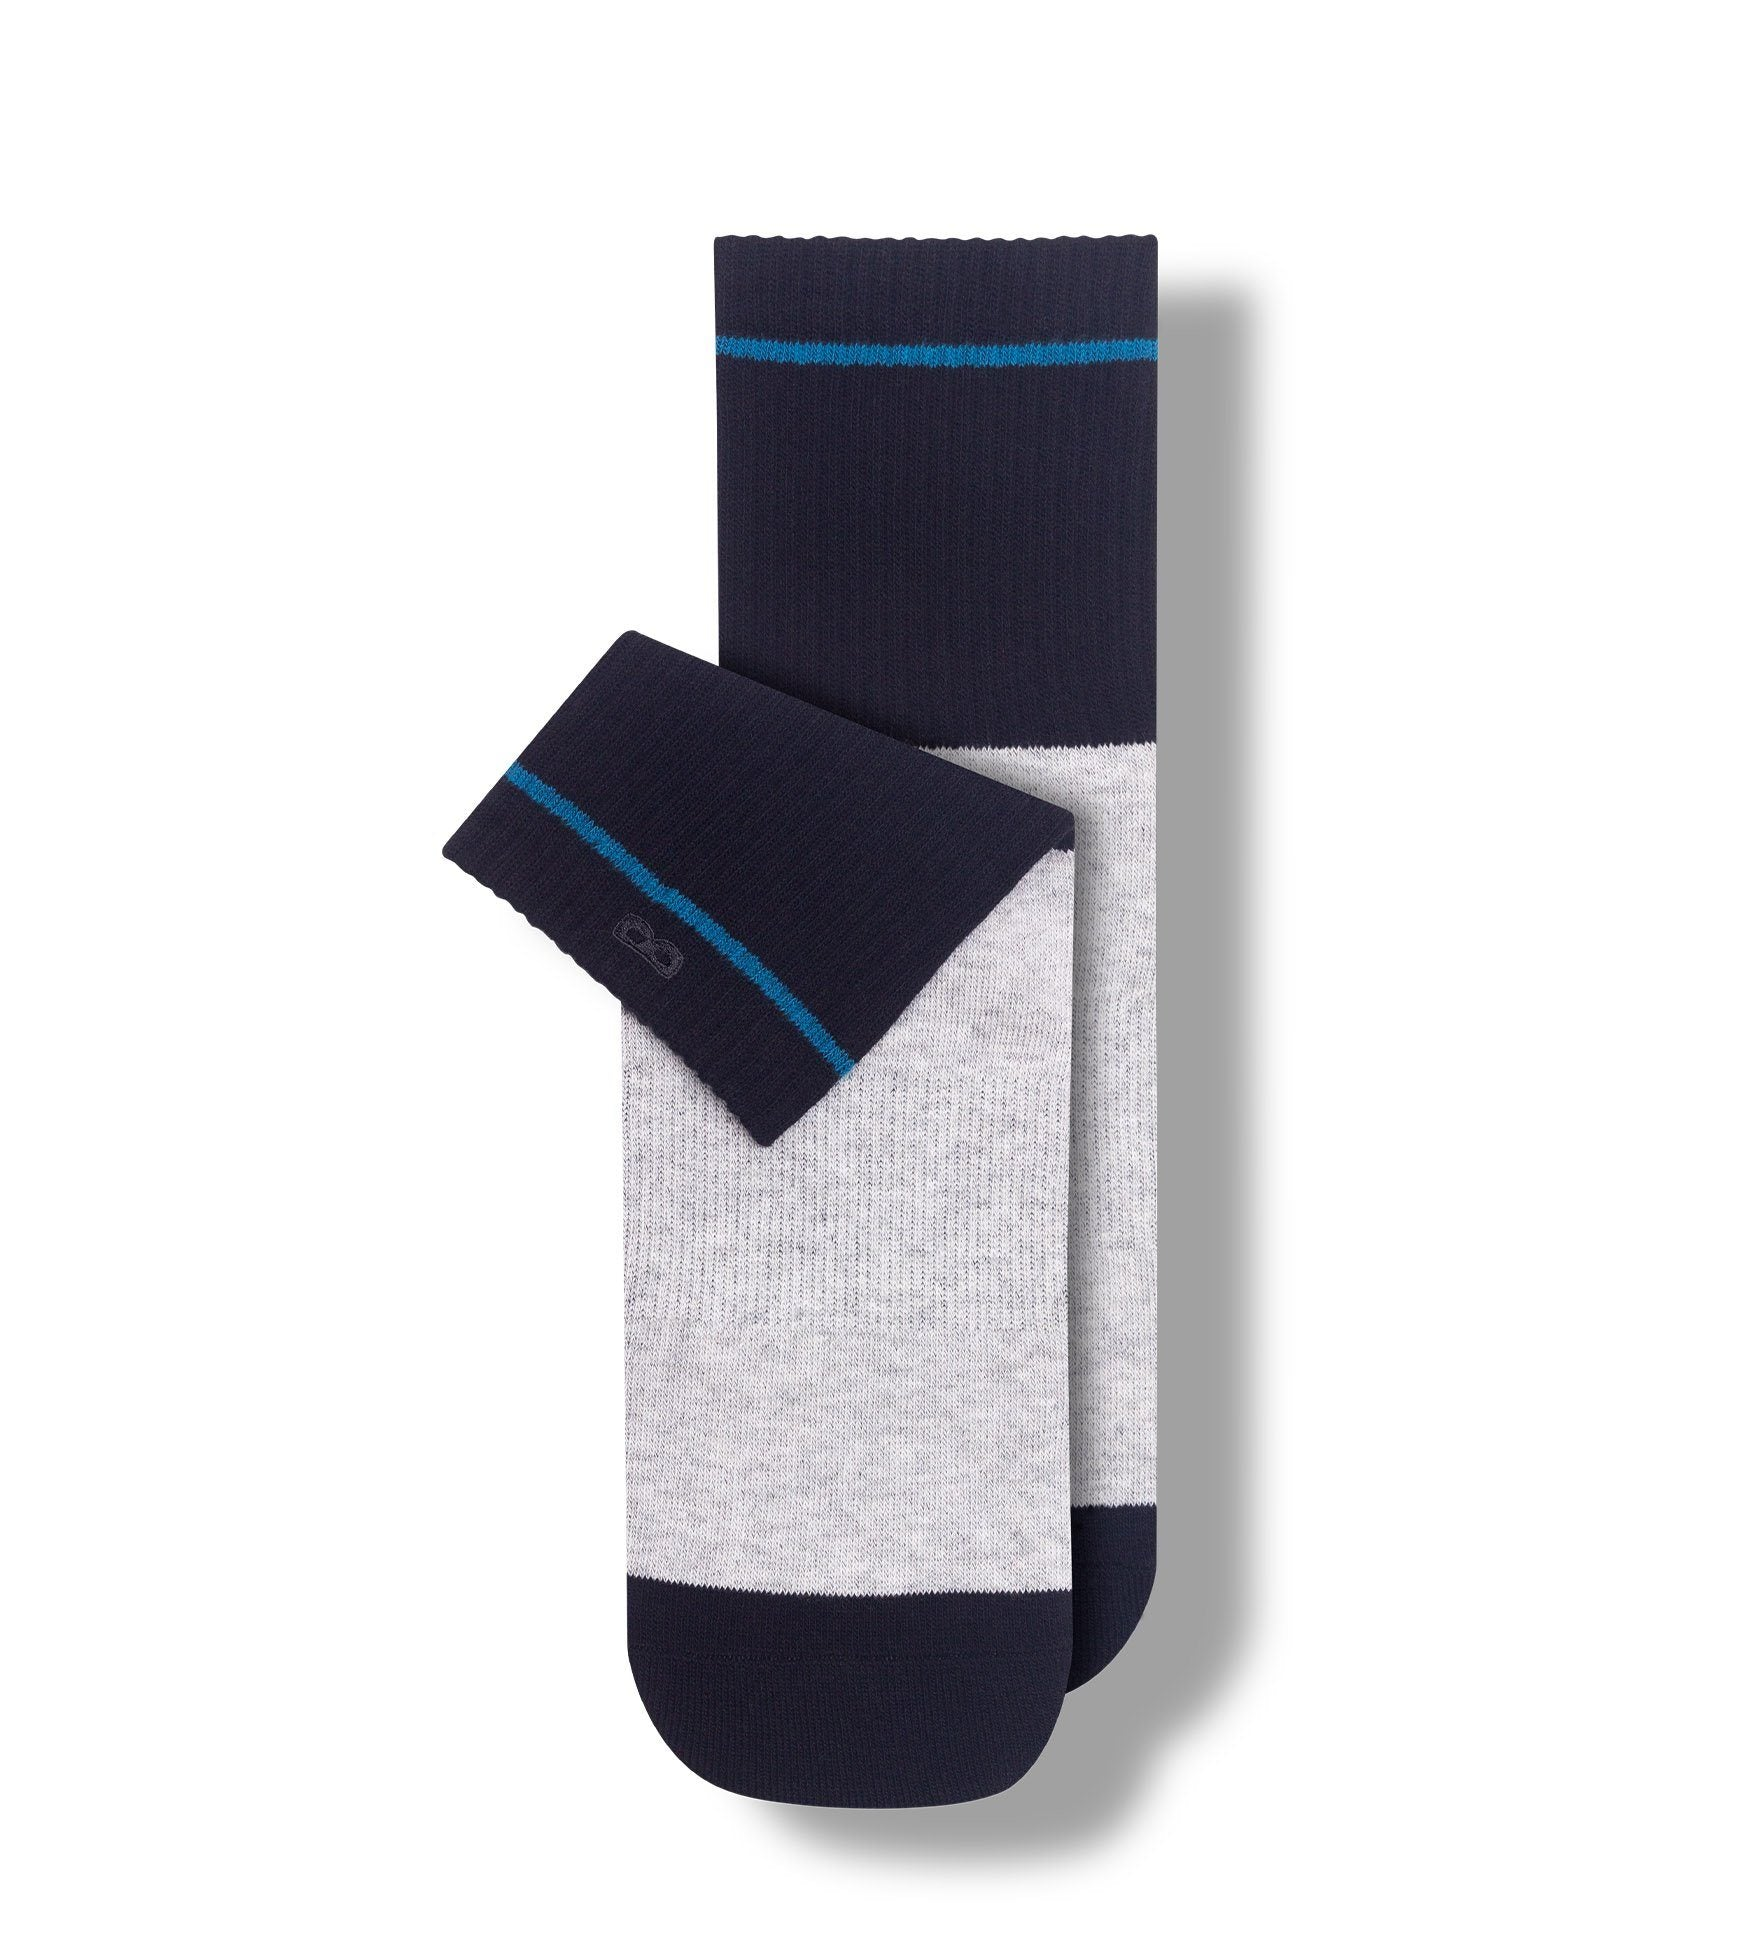 O'Shea Men's Cushion Ankle Socks